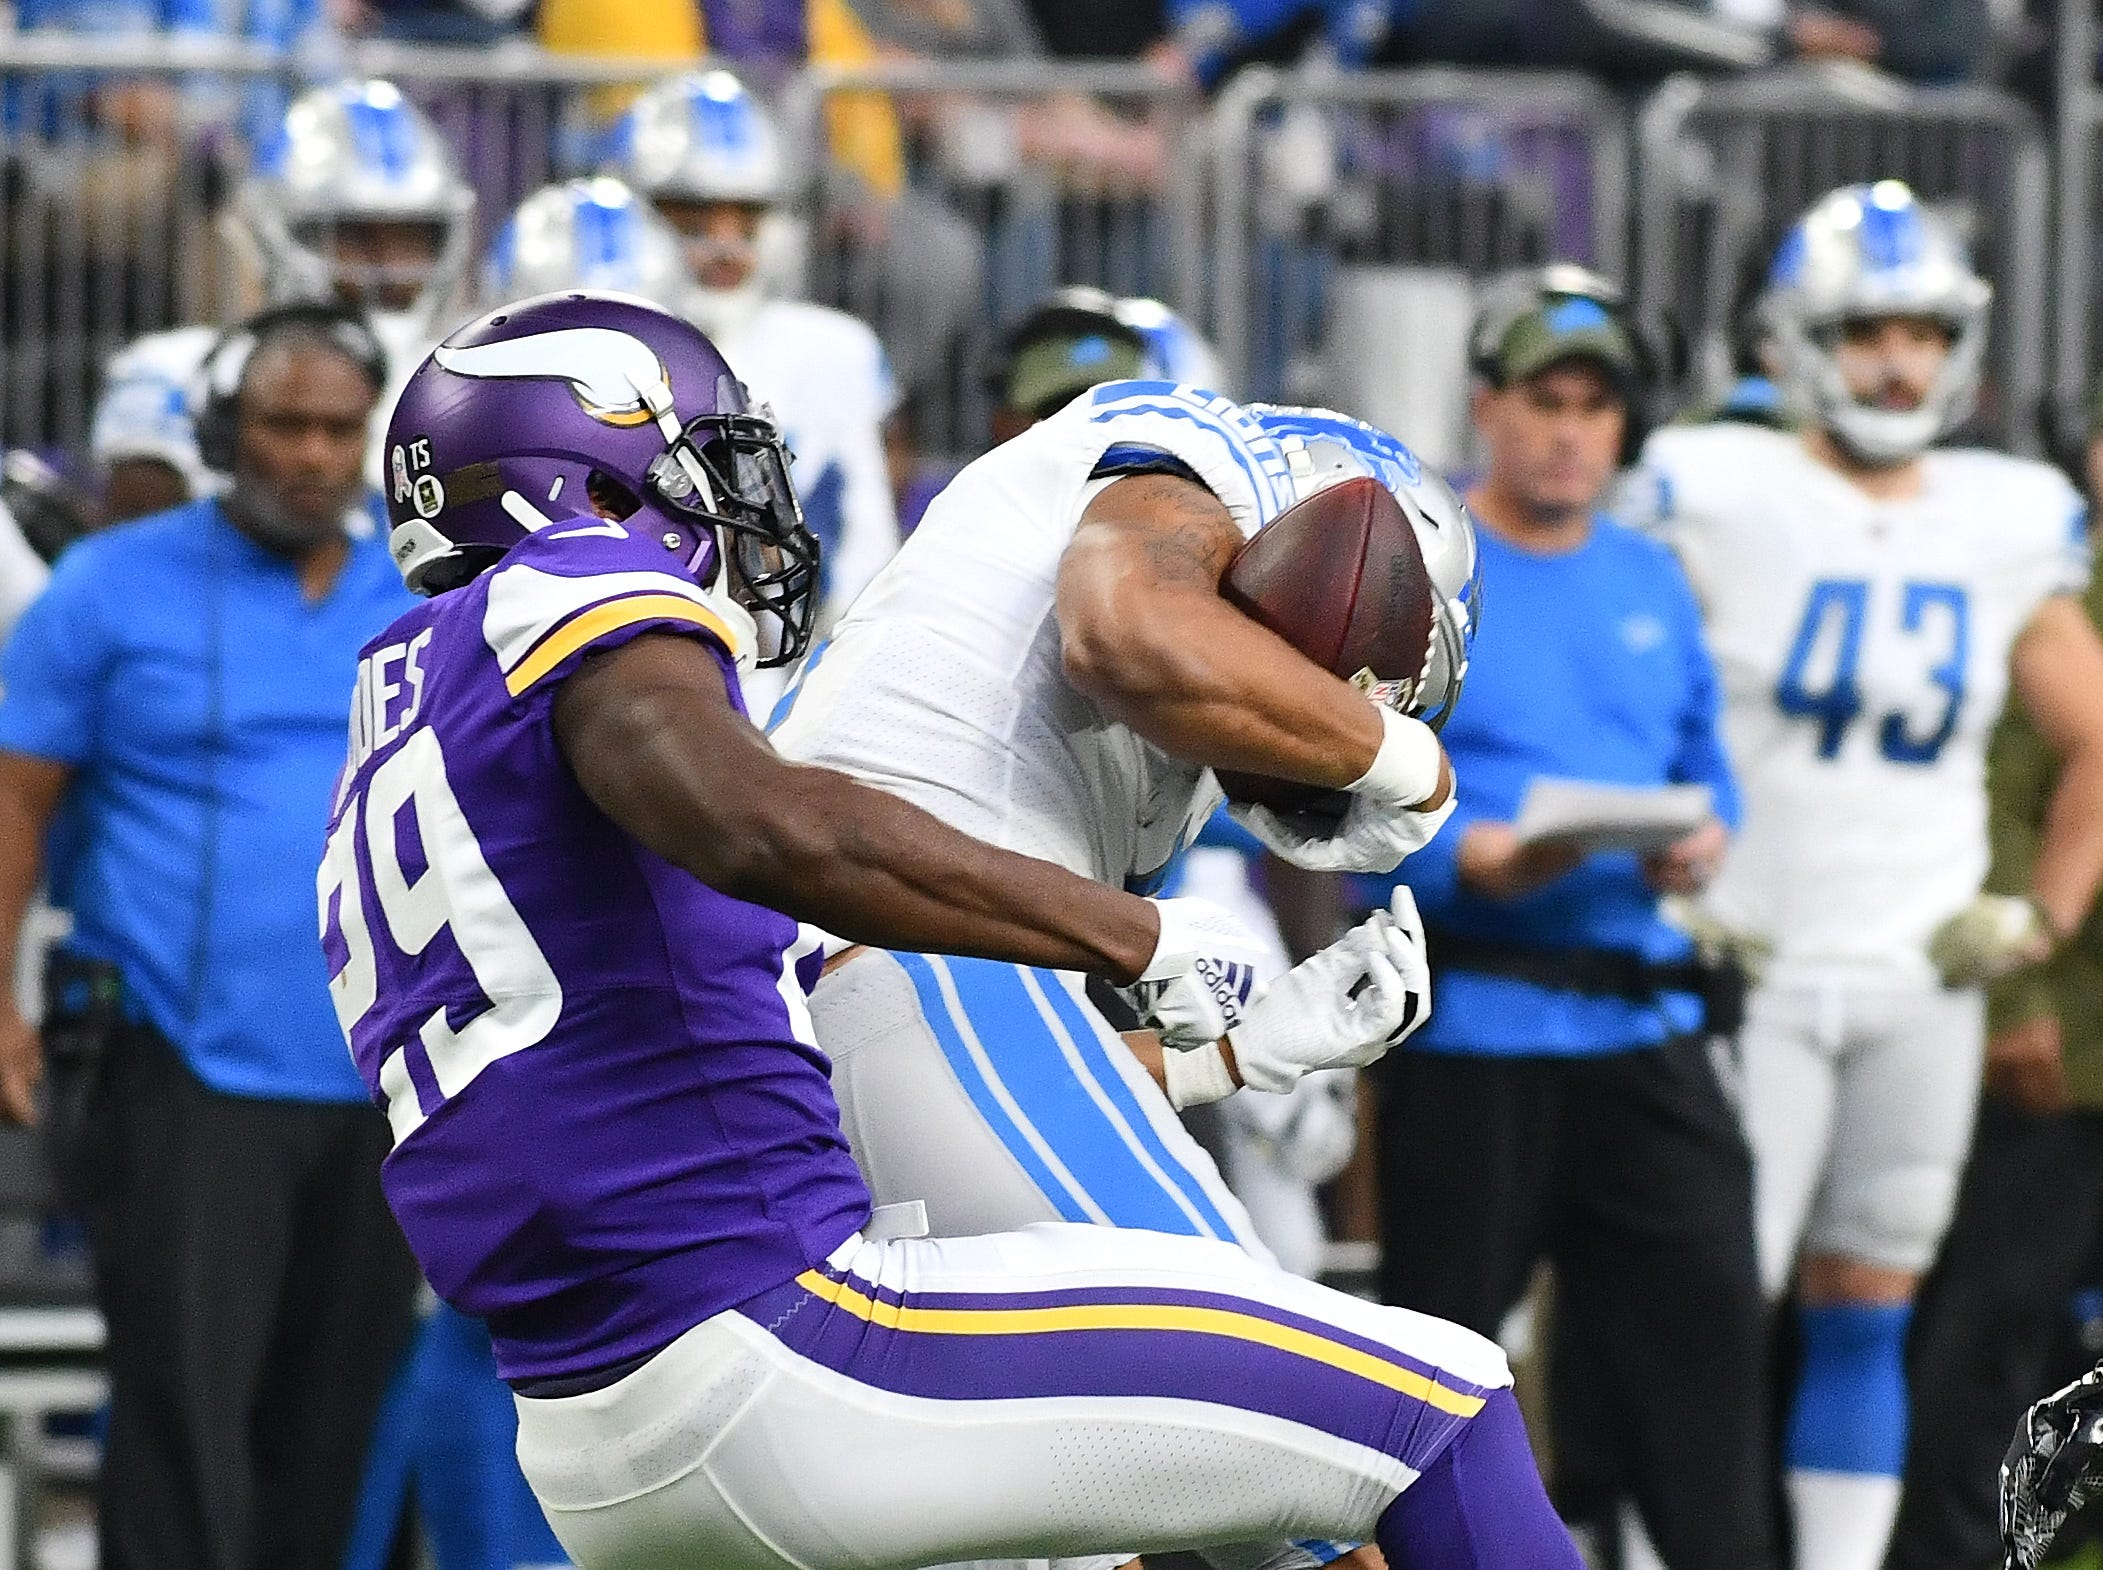 Lions wide receiver Marvin Jones Jr. loses the ball as Vikings' Xavier Rhodes hits him but fortunately for Detroit, the ball rolled out of bounds in the third quarter.